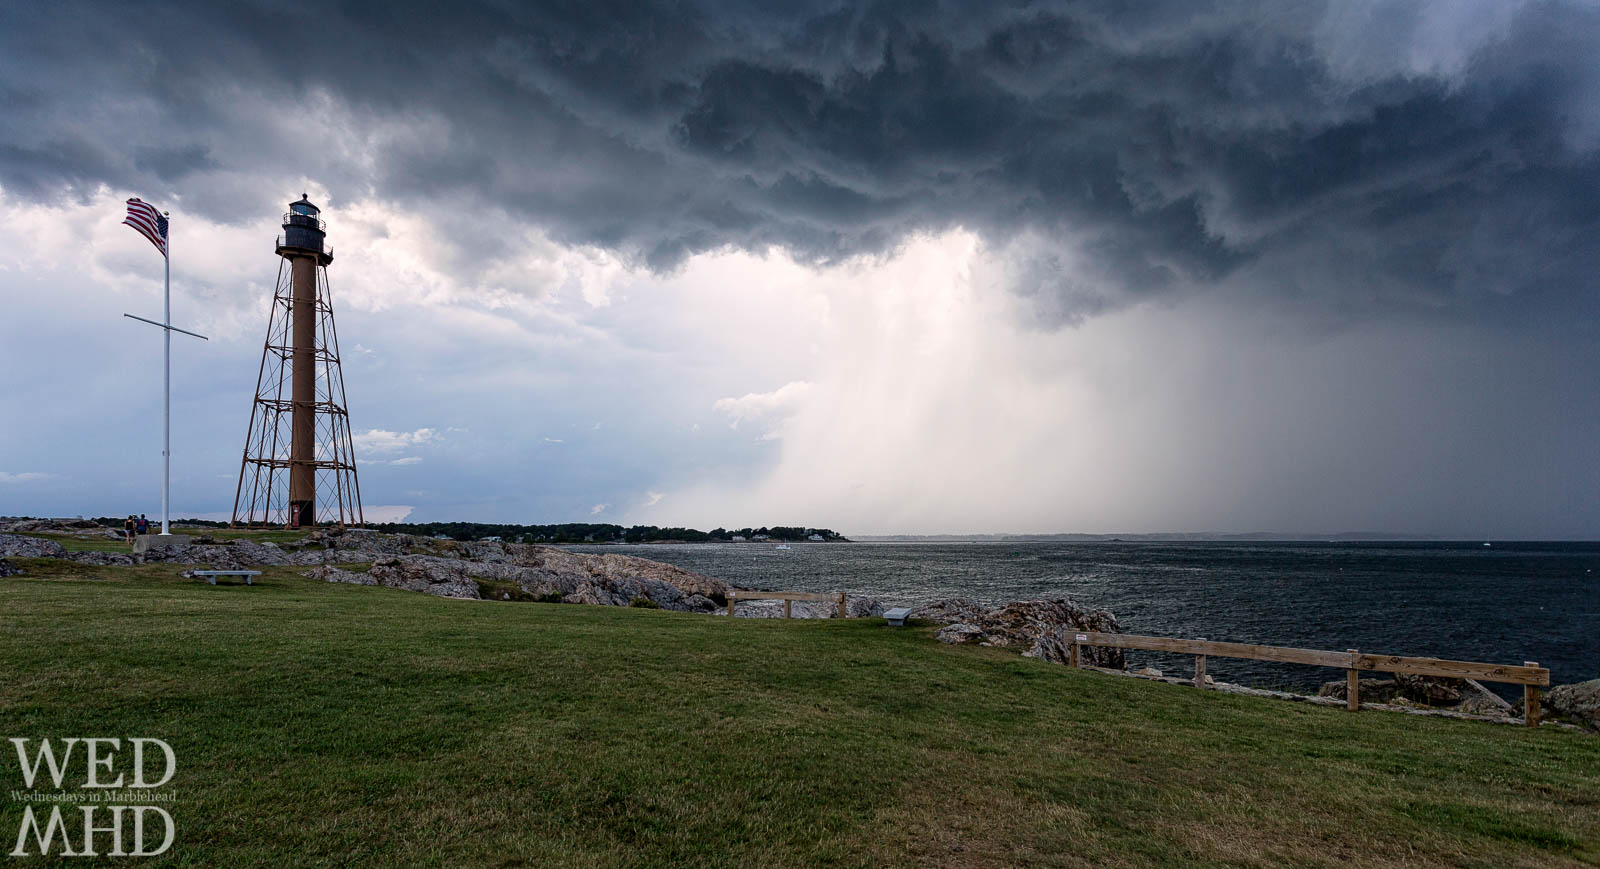 Grey clouds from a passing storm form a churning sky over Marblehead LIght